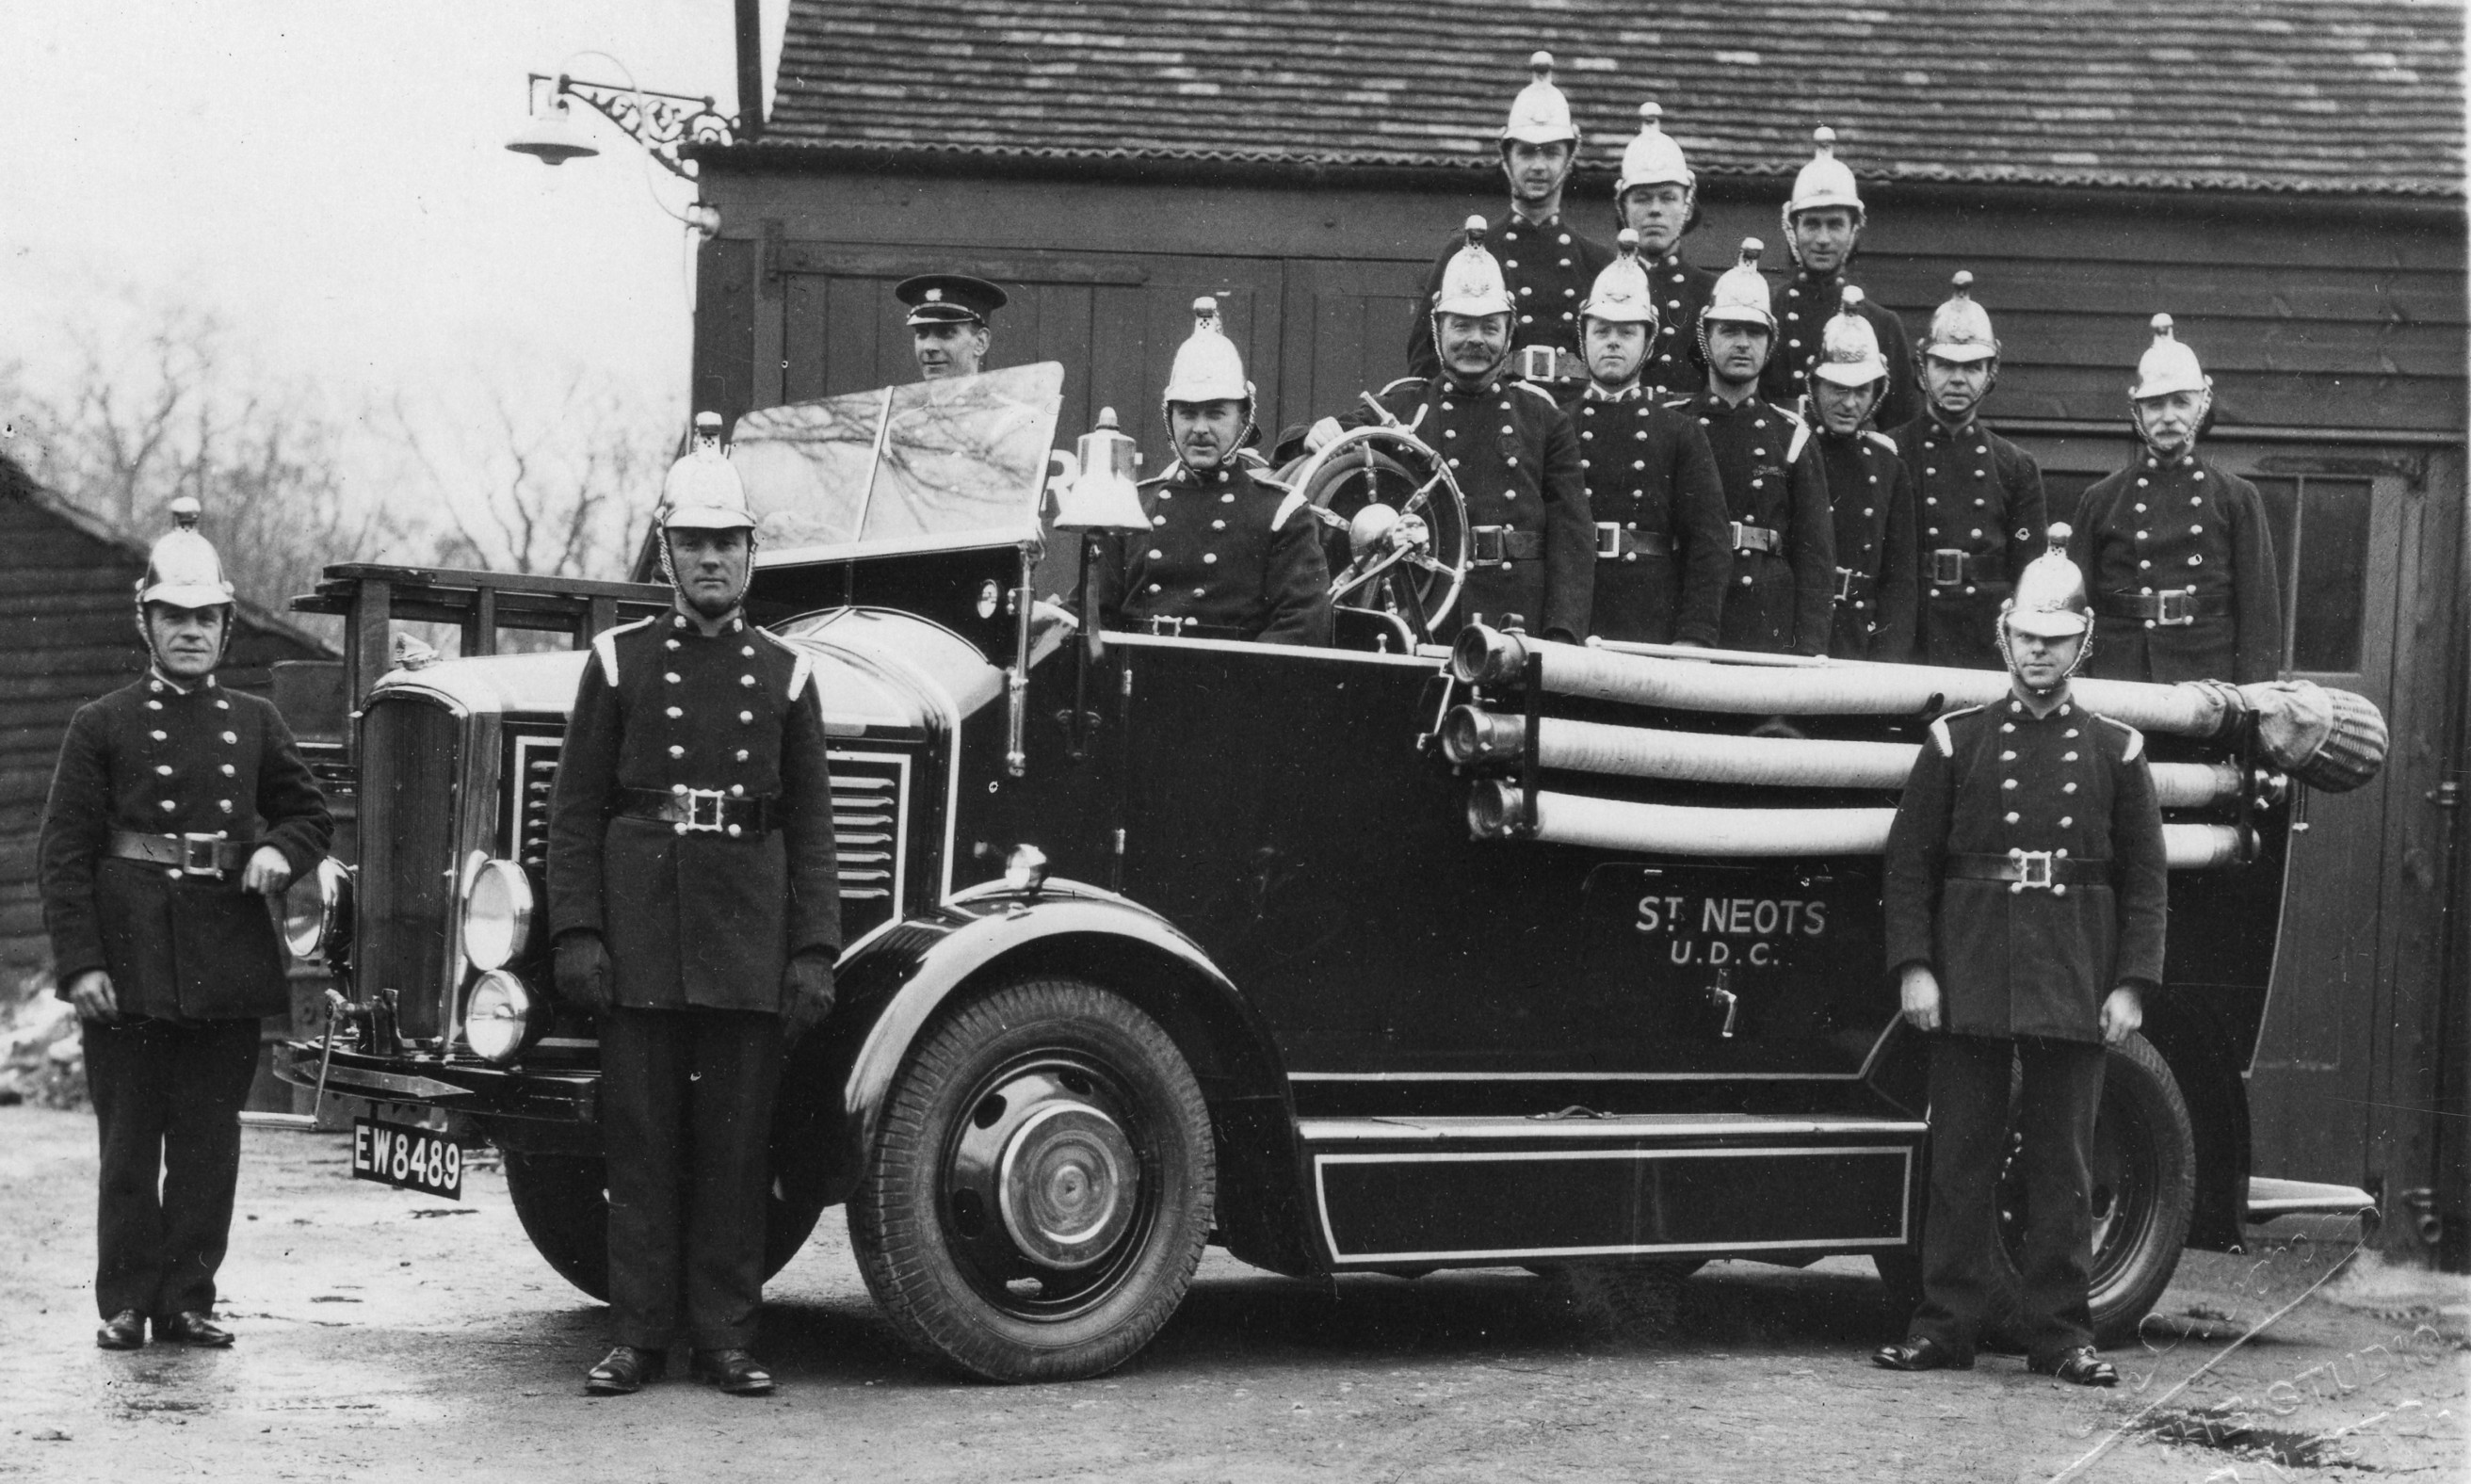 St Neots Fire Engine and crew in the 1930s | Groups, Male